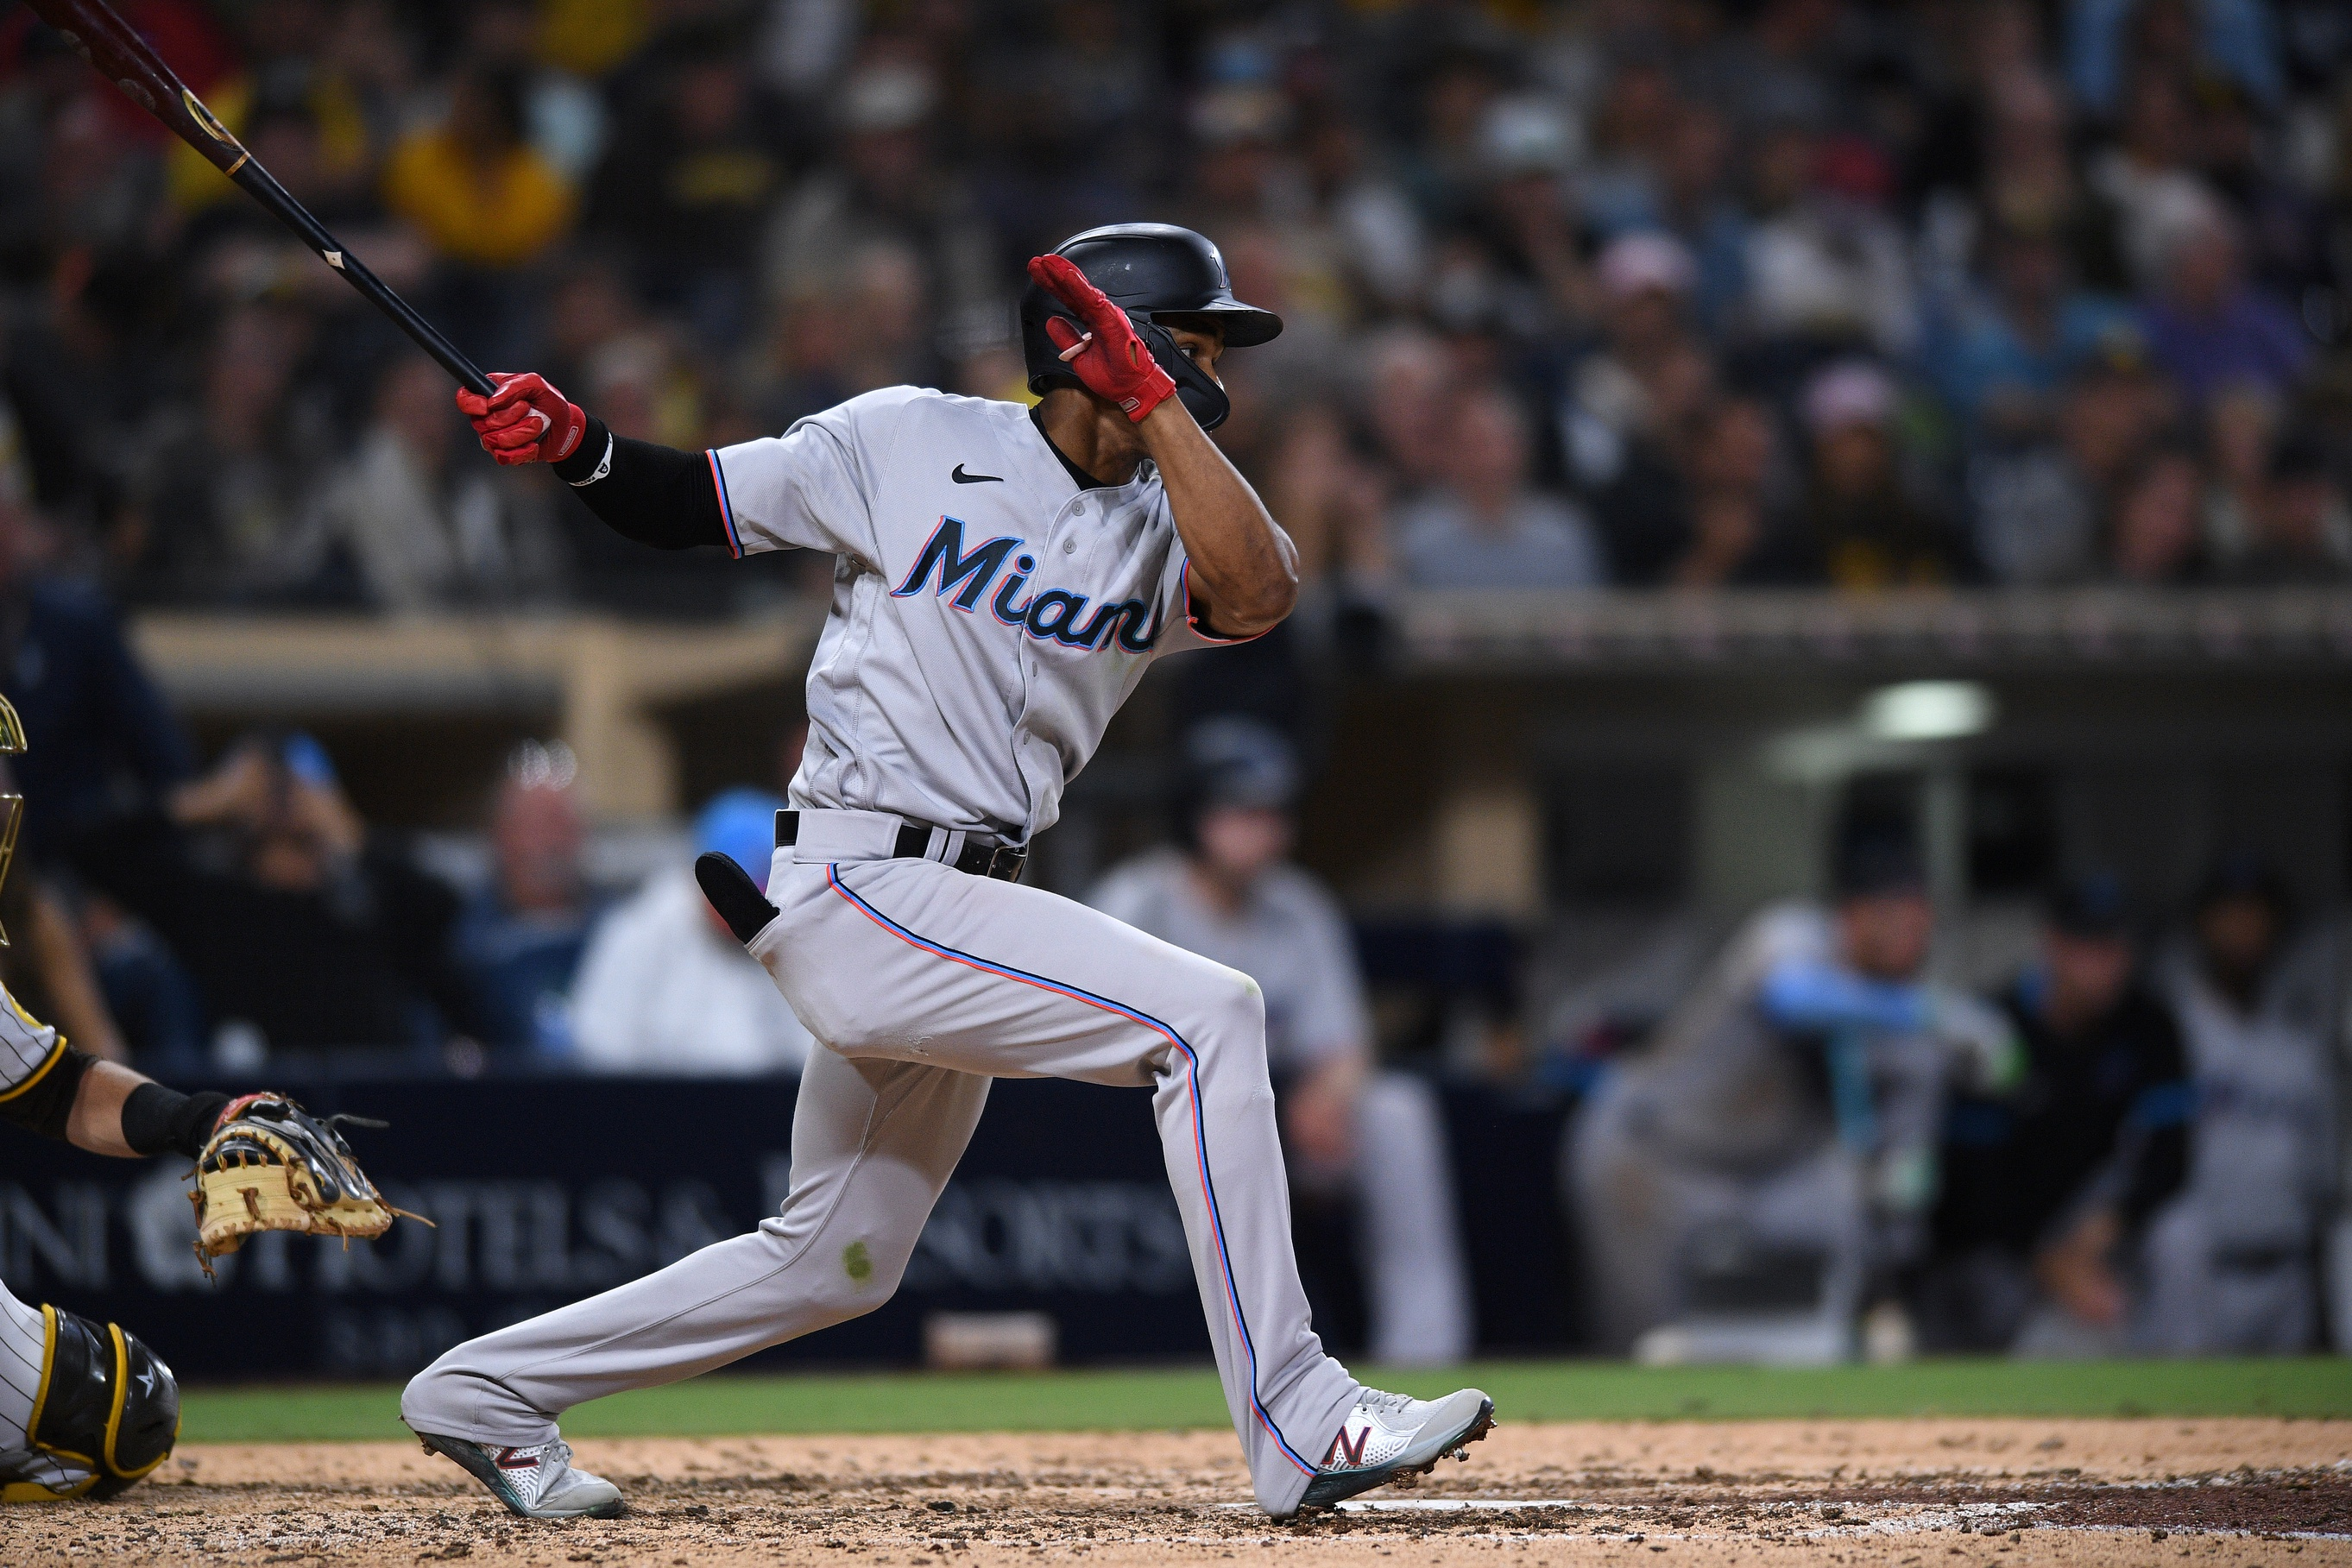 Chicago Cubs vs Miami Marlins Prediction, 8/14/2021 MLB Pick, Tips and Odds